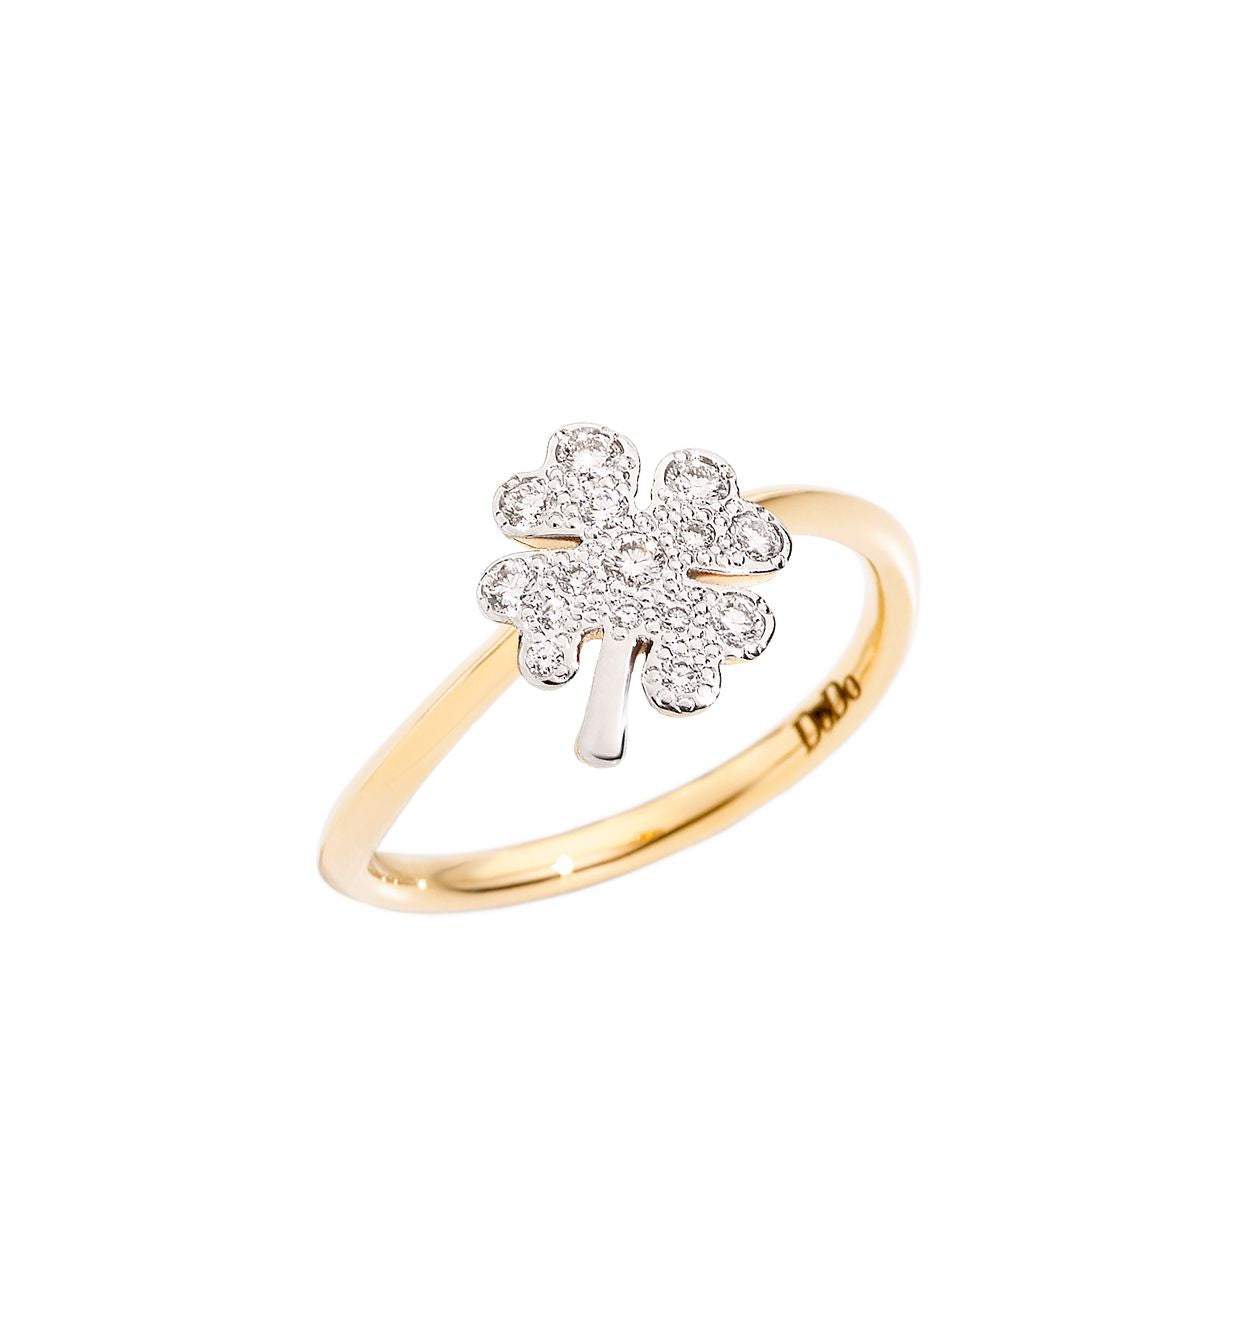 DoDo Four Leaf Clover Ring in 18k Yellow Gold with Diamonds - large - Orsini Jewellers NZ